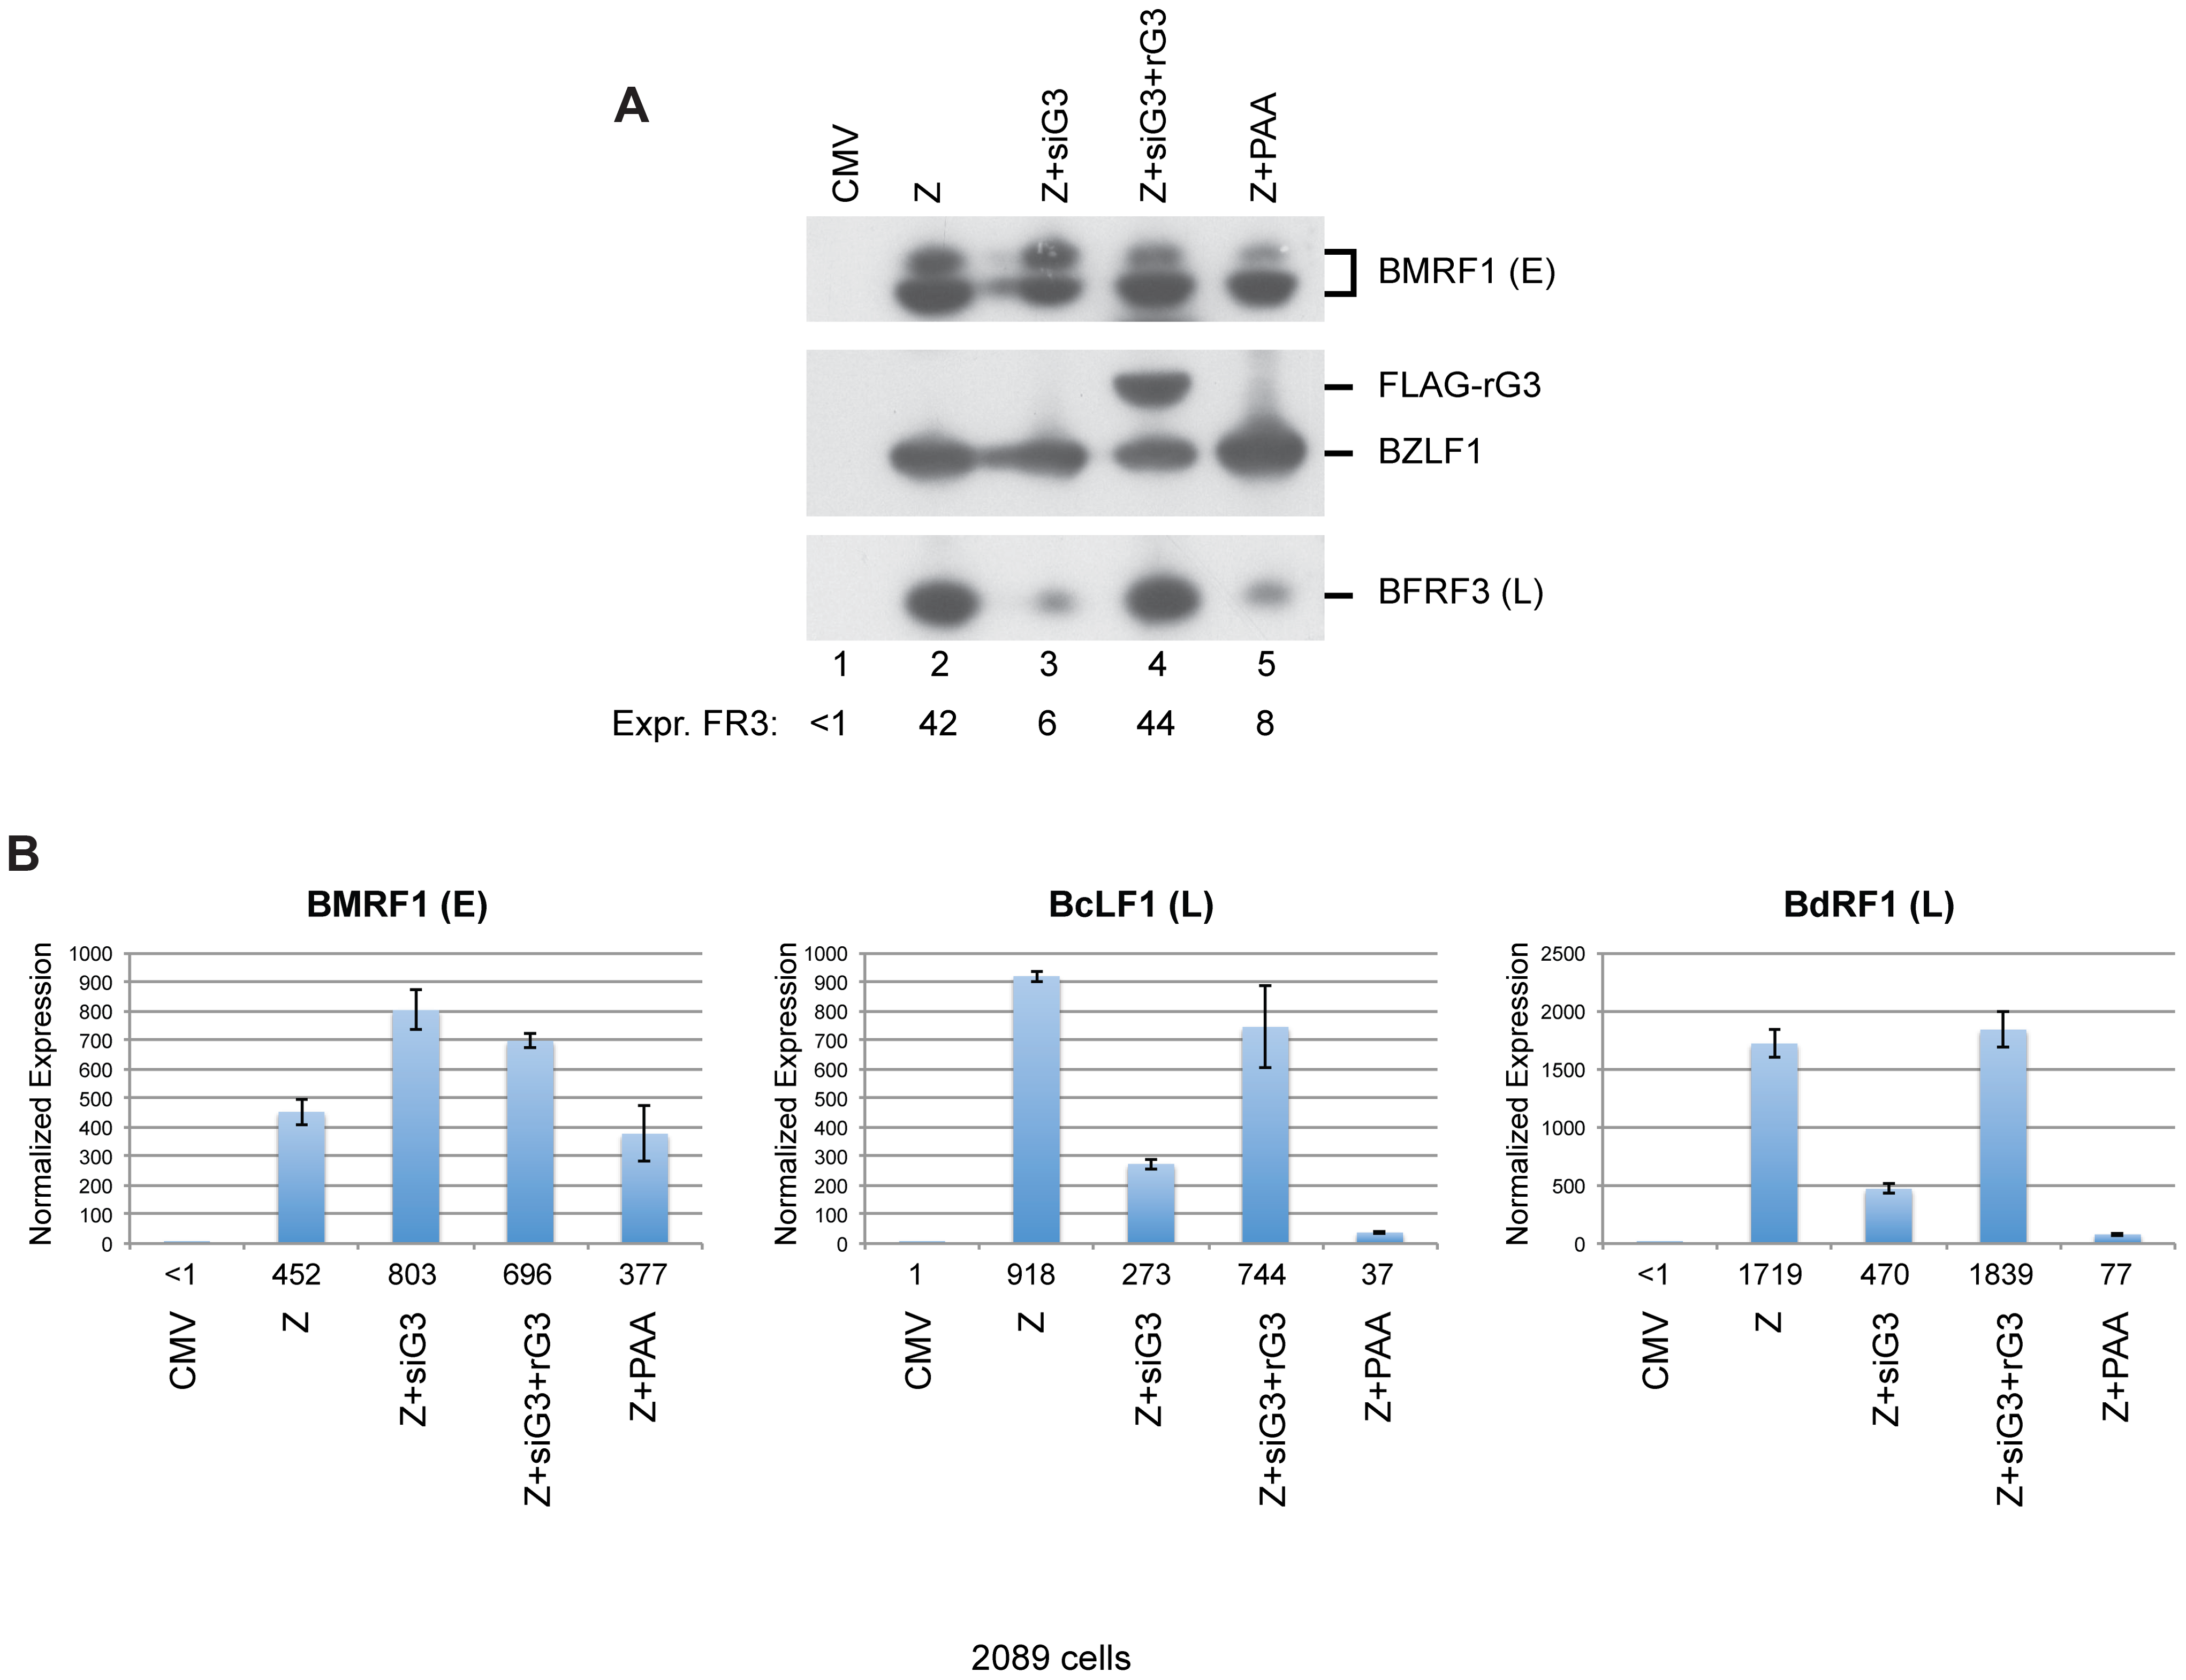 Silent mutations in BGLF3 suppress the effect of siG3 on late gene expression.